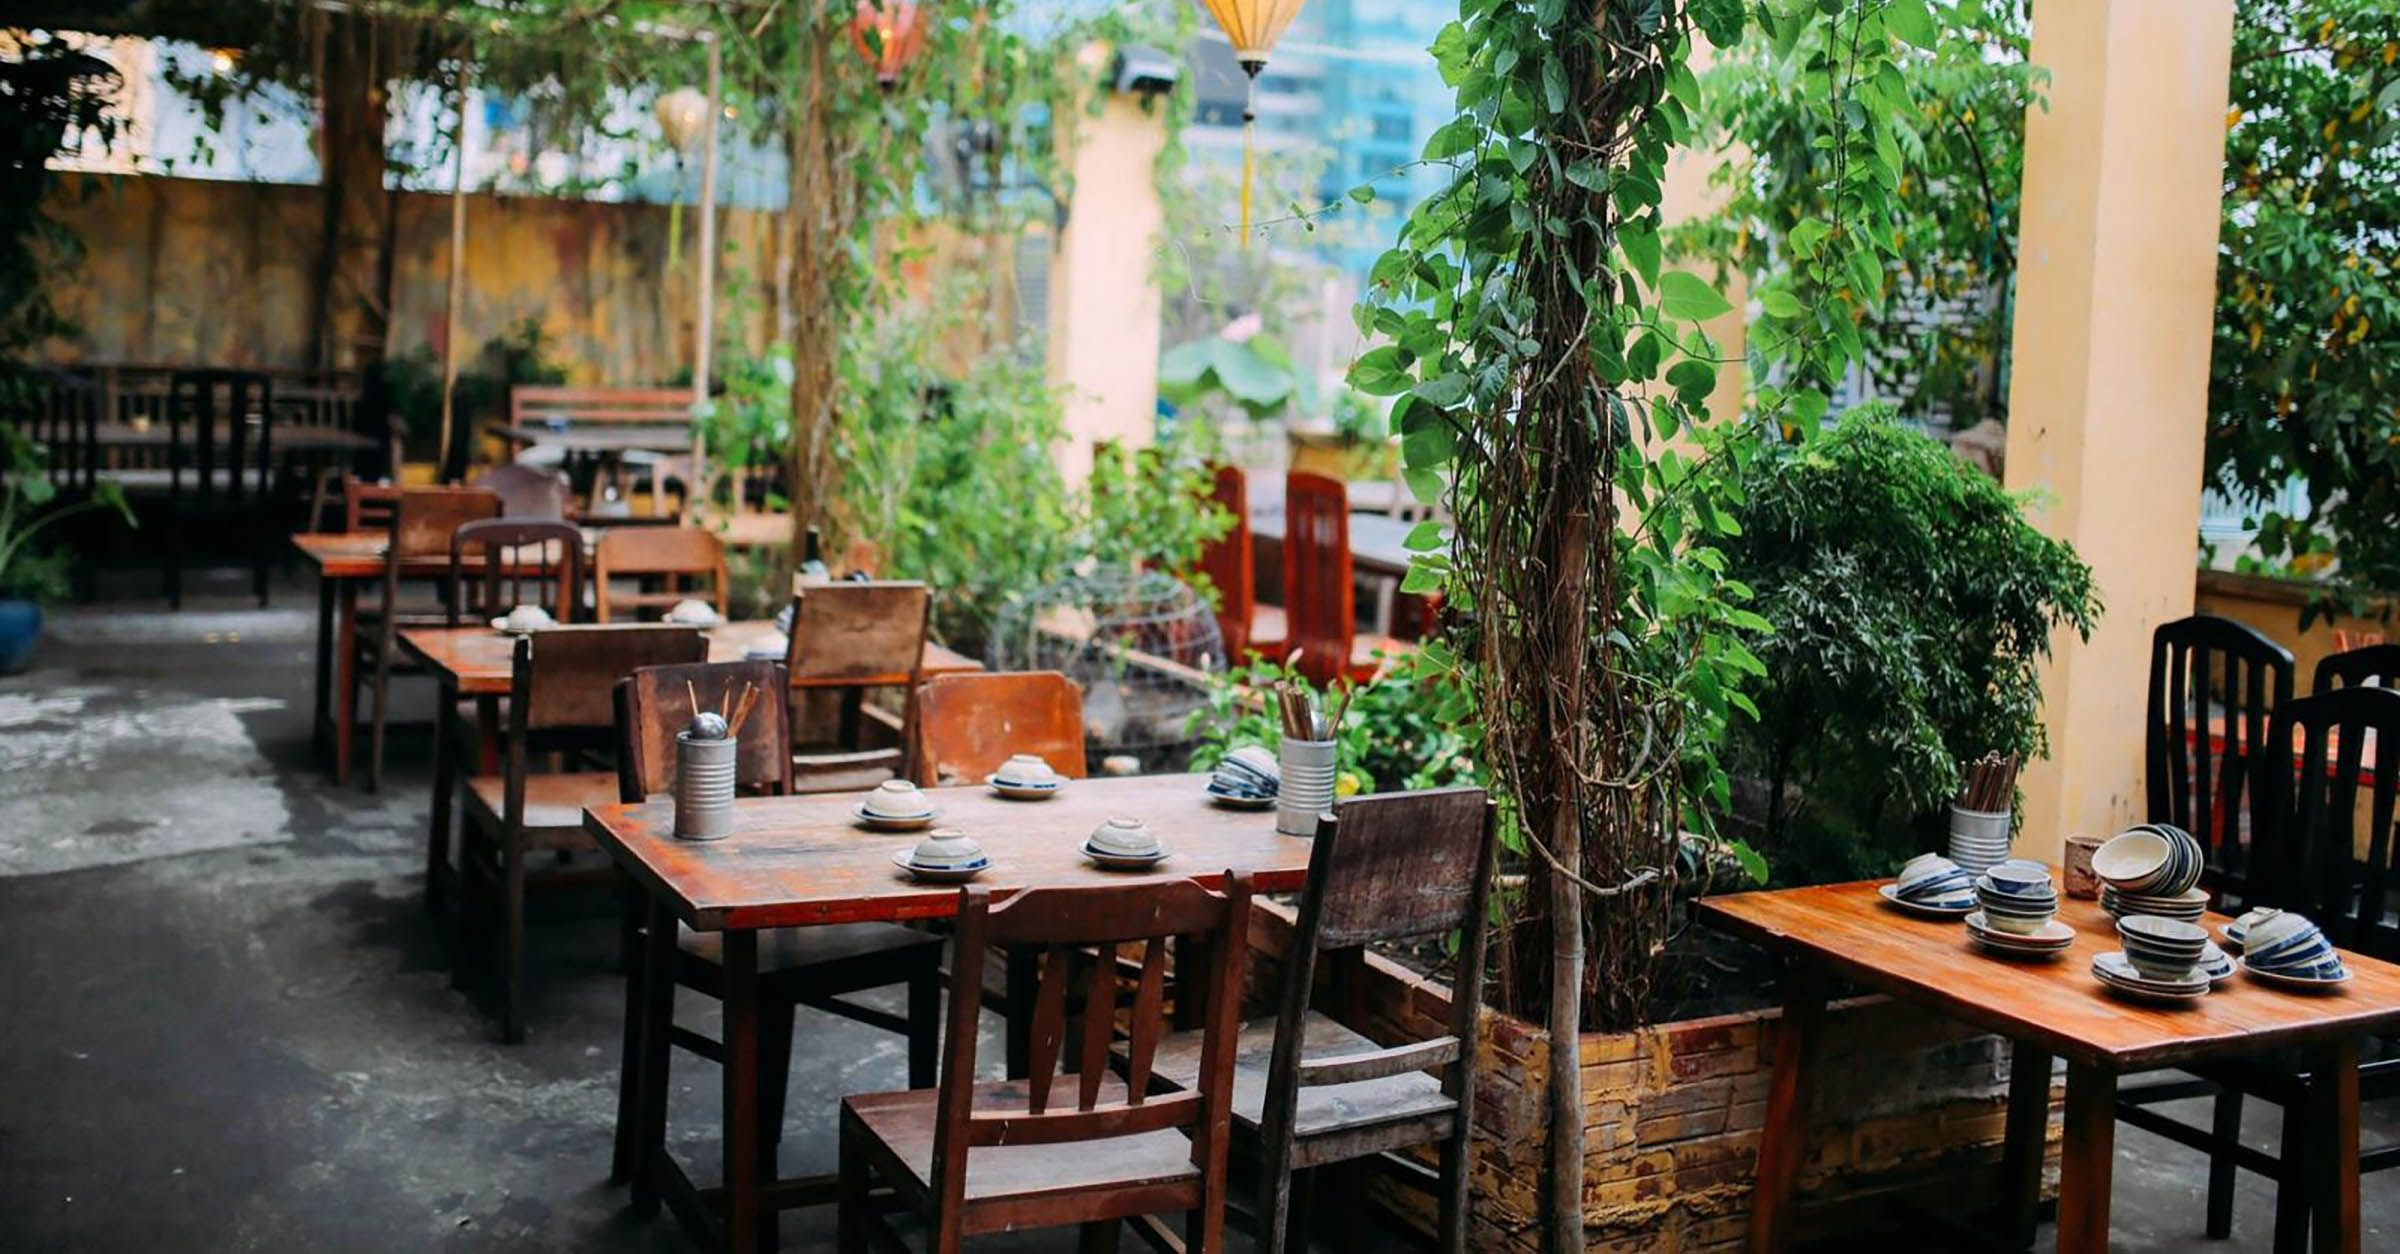 Secret Garden Restaurant Is A Favorite Among Travelers And Locals For Being One Of The Top Choices For A Tradit Rooftop Restaurant Secret Garden Vietnam Travel